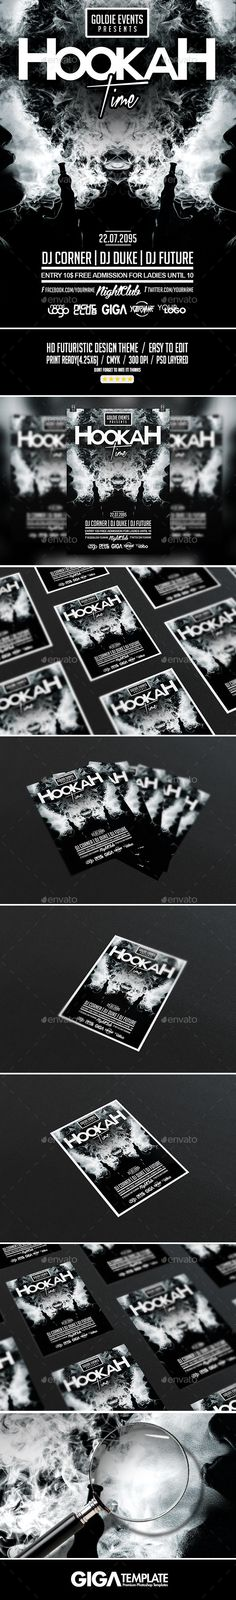 Suit and Tie Party Flyer v2 Party flyer, Flyer template and Psd - black and white flyer template